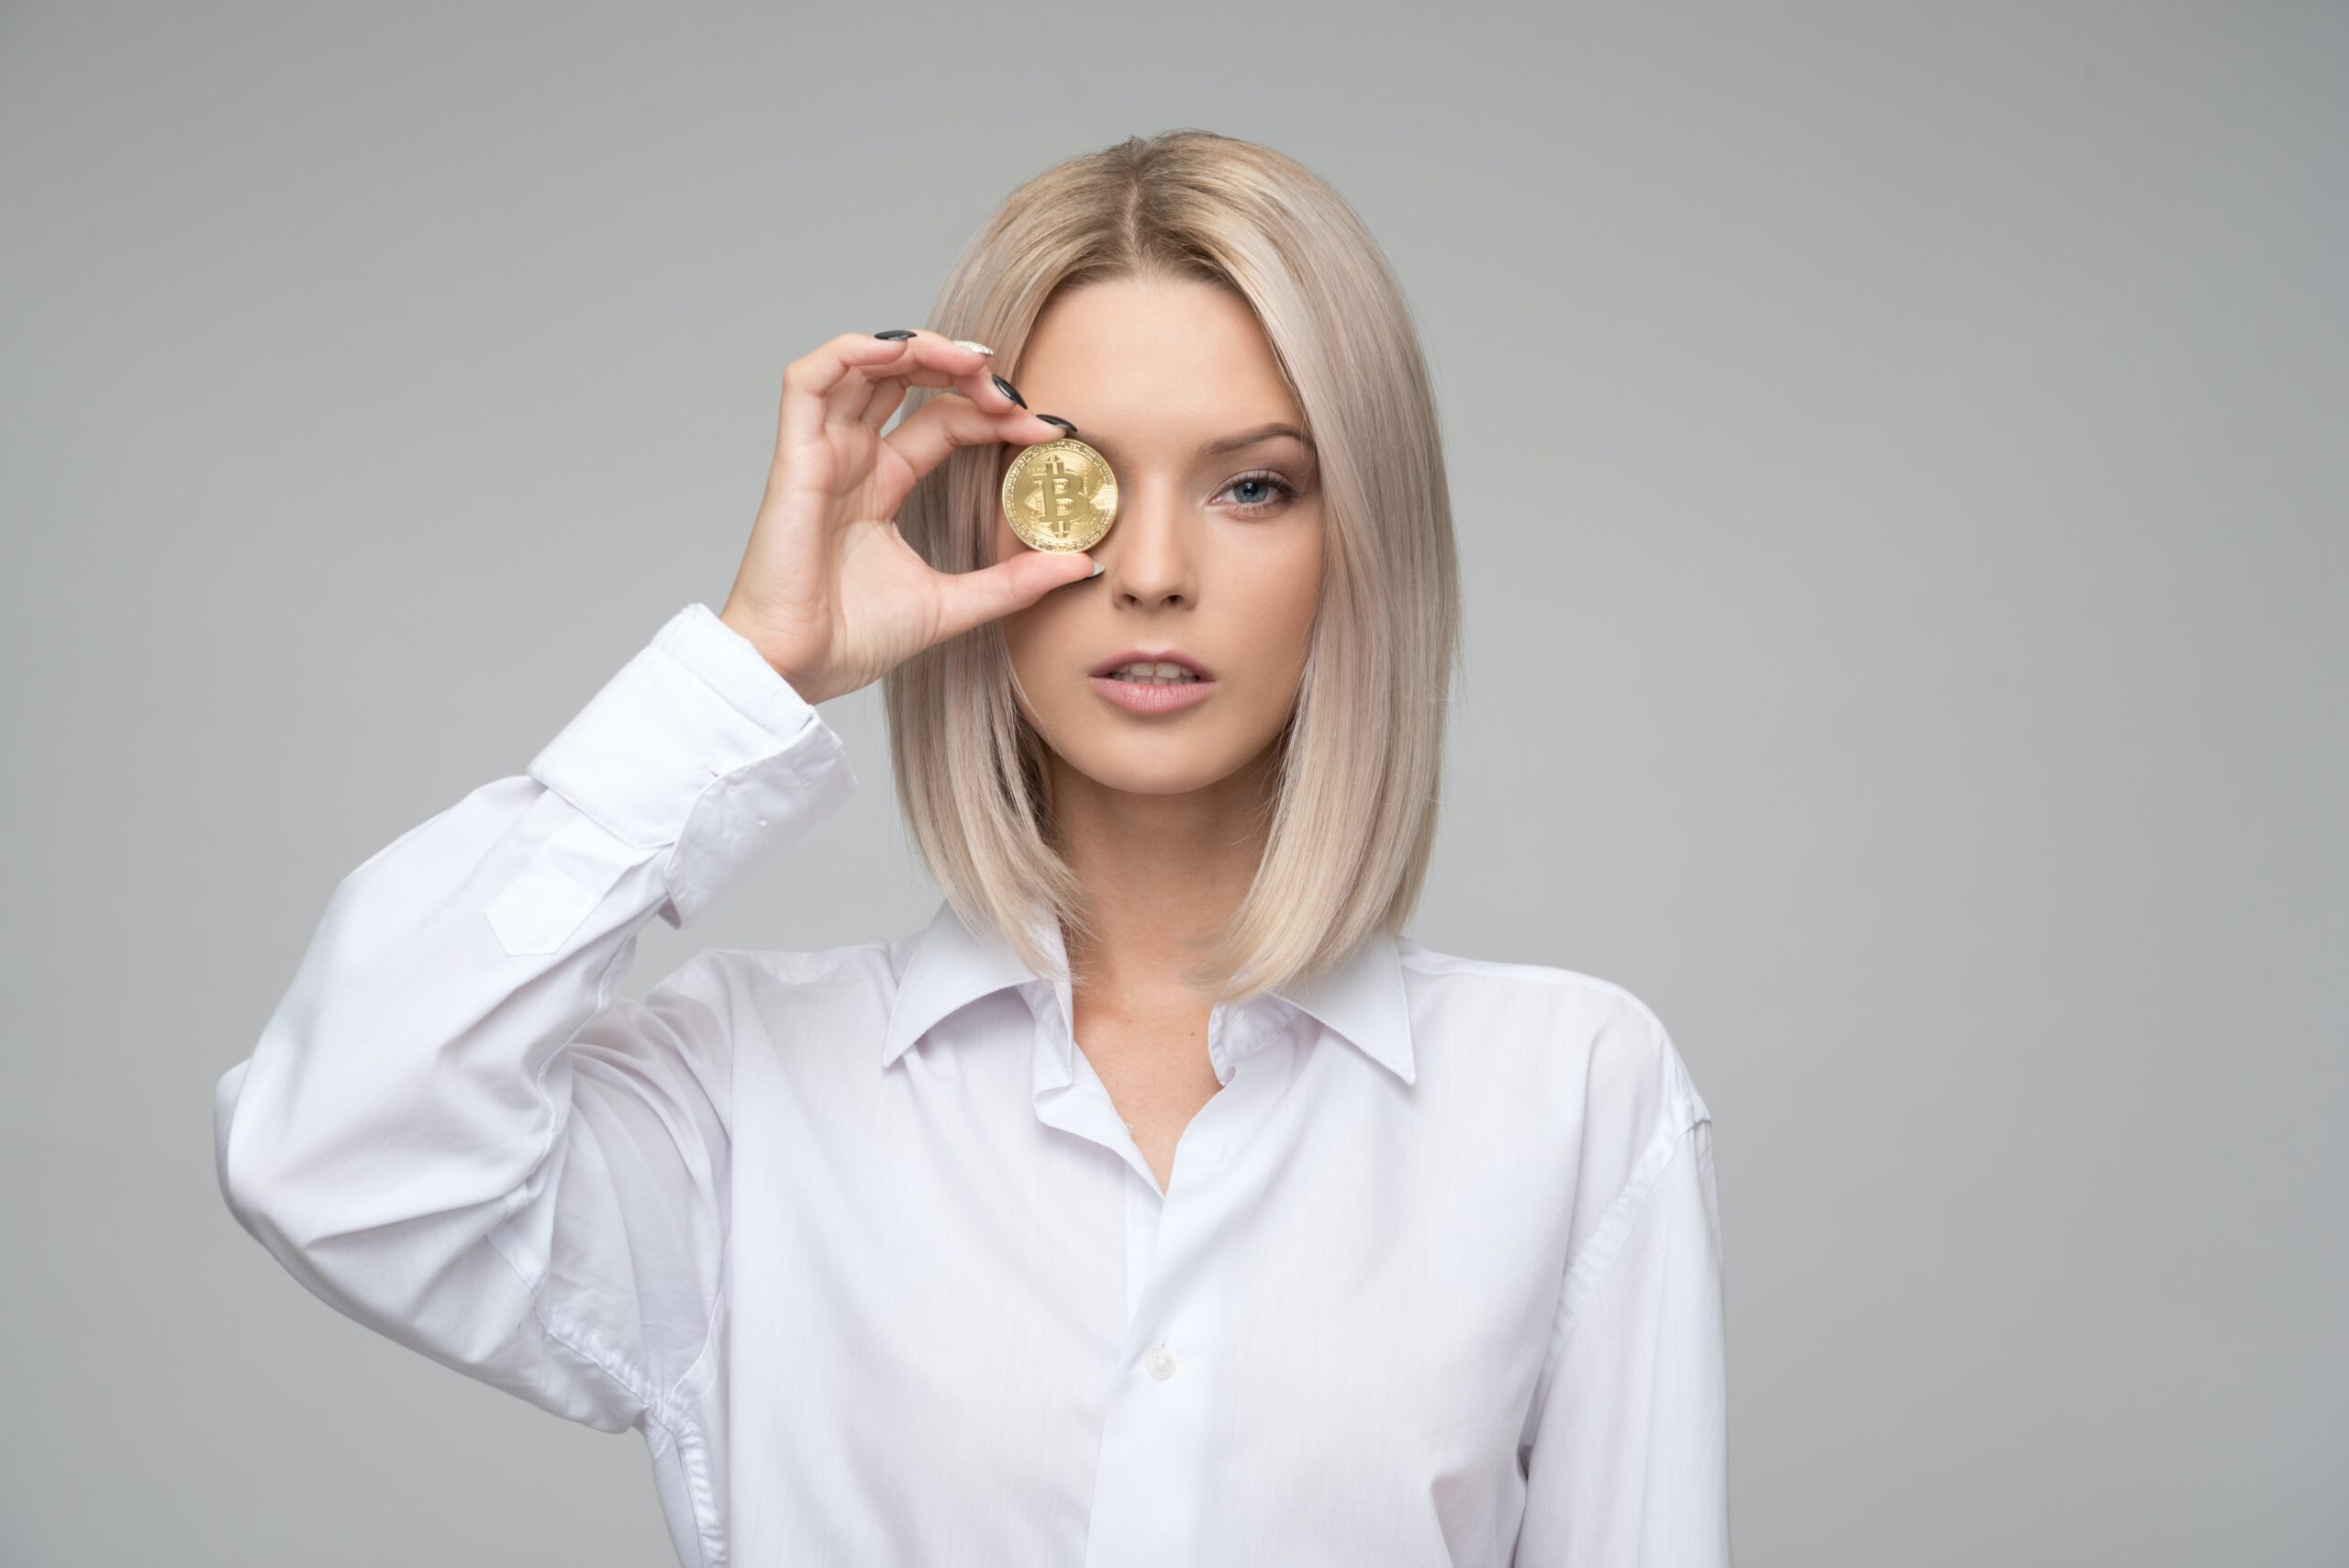 girl holding coin in right hand on right eyeborrow 50 pounds